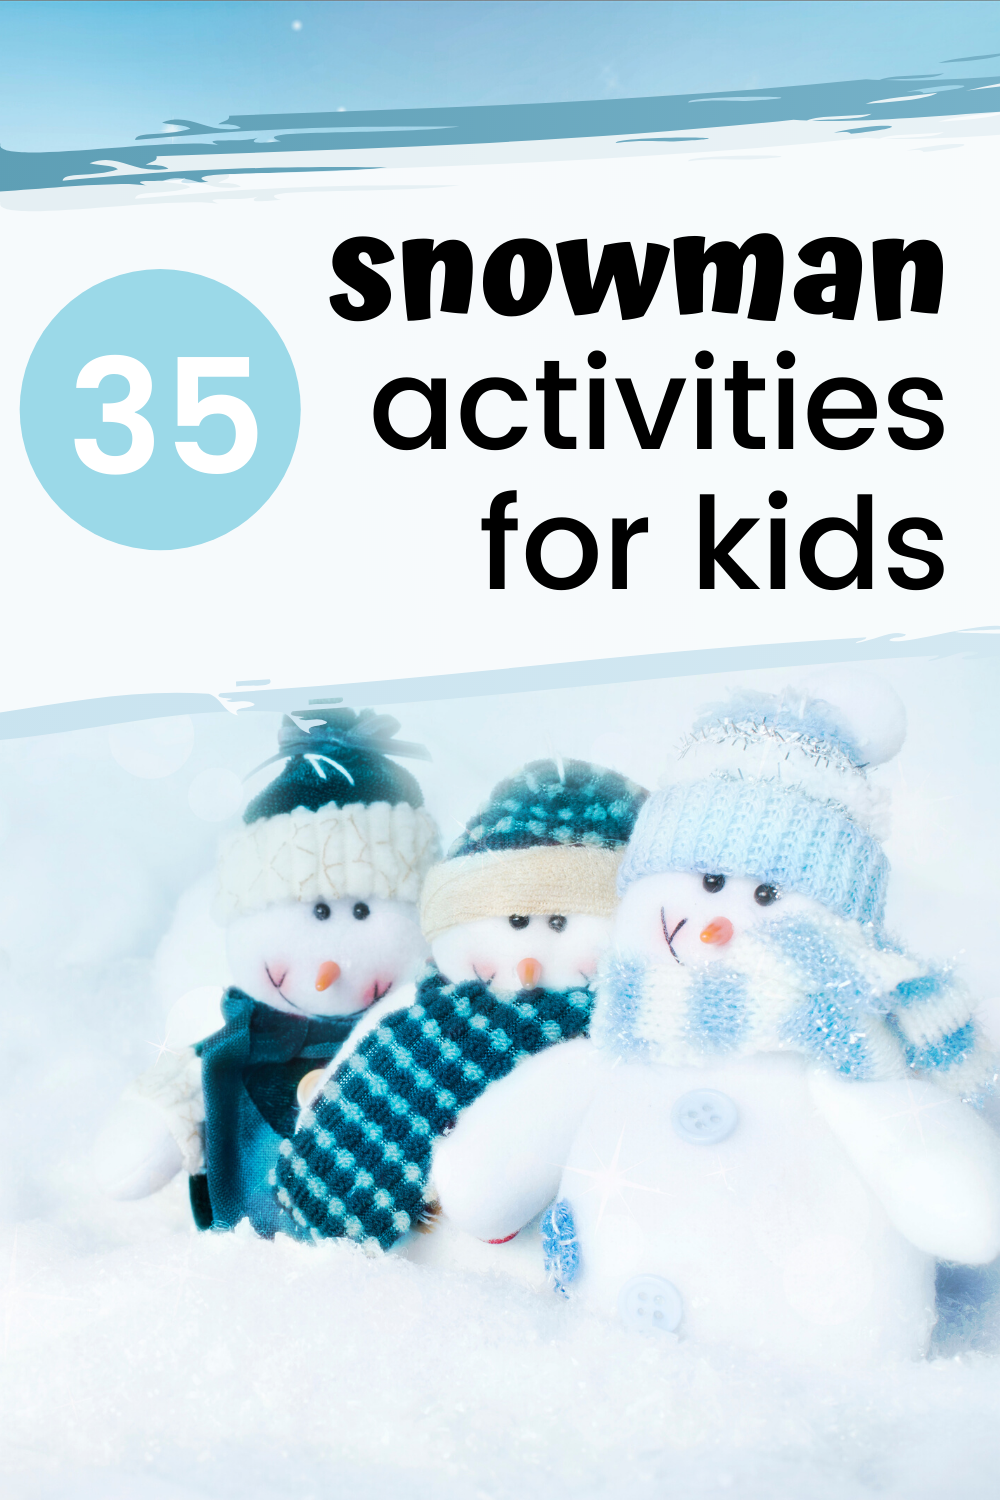 Keep kids busy this winter with one or more of these snowman activities for kids. Discover crafts, art projects, hands-on activities, printables, and more.